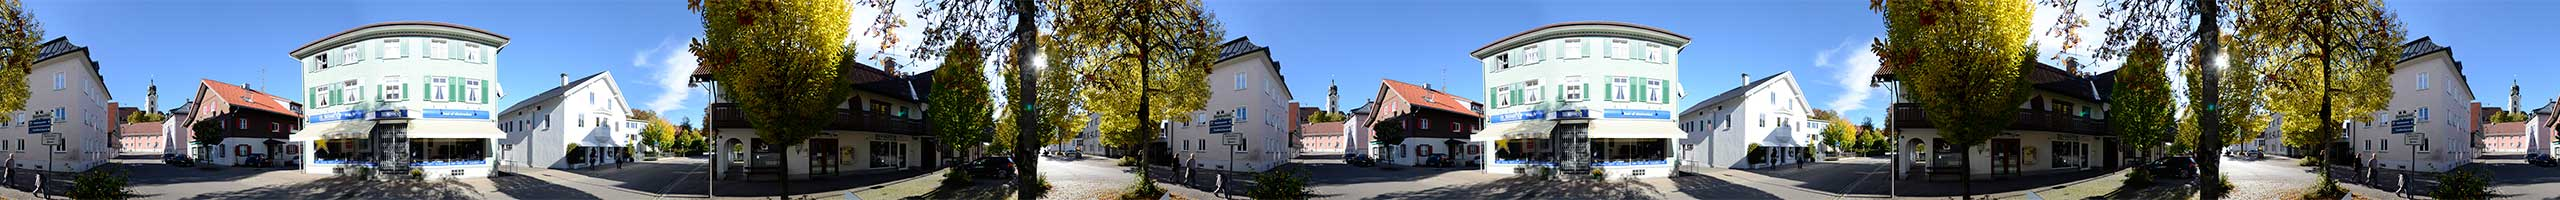 Panorama_Lindenberg_15_final_2560pix.jpg